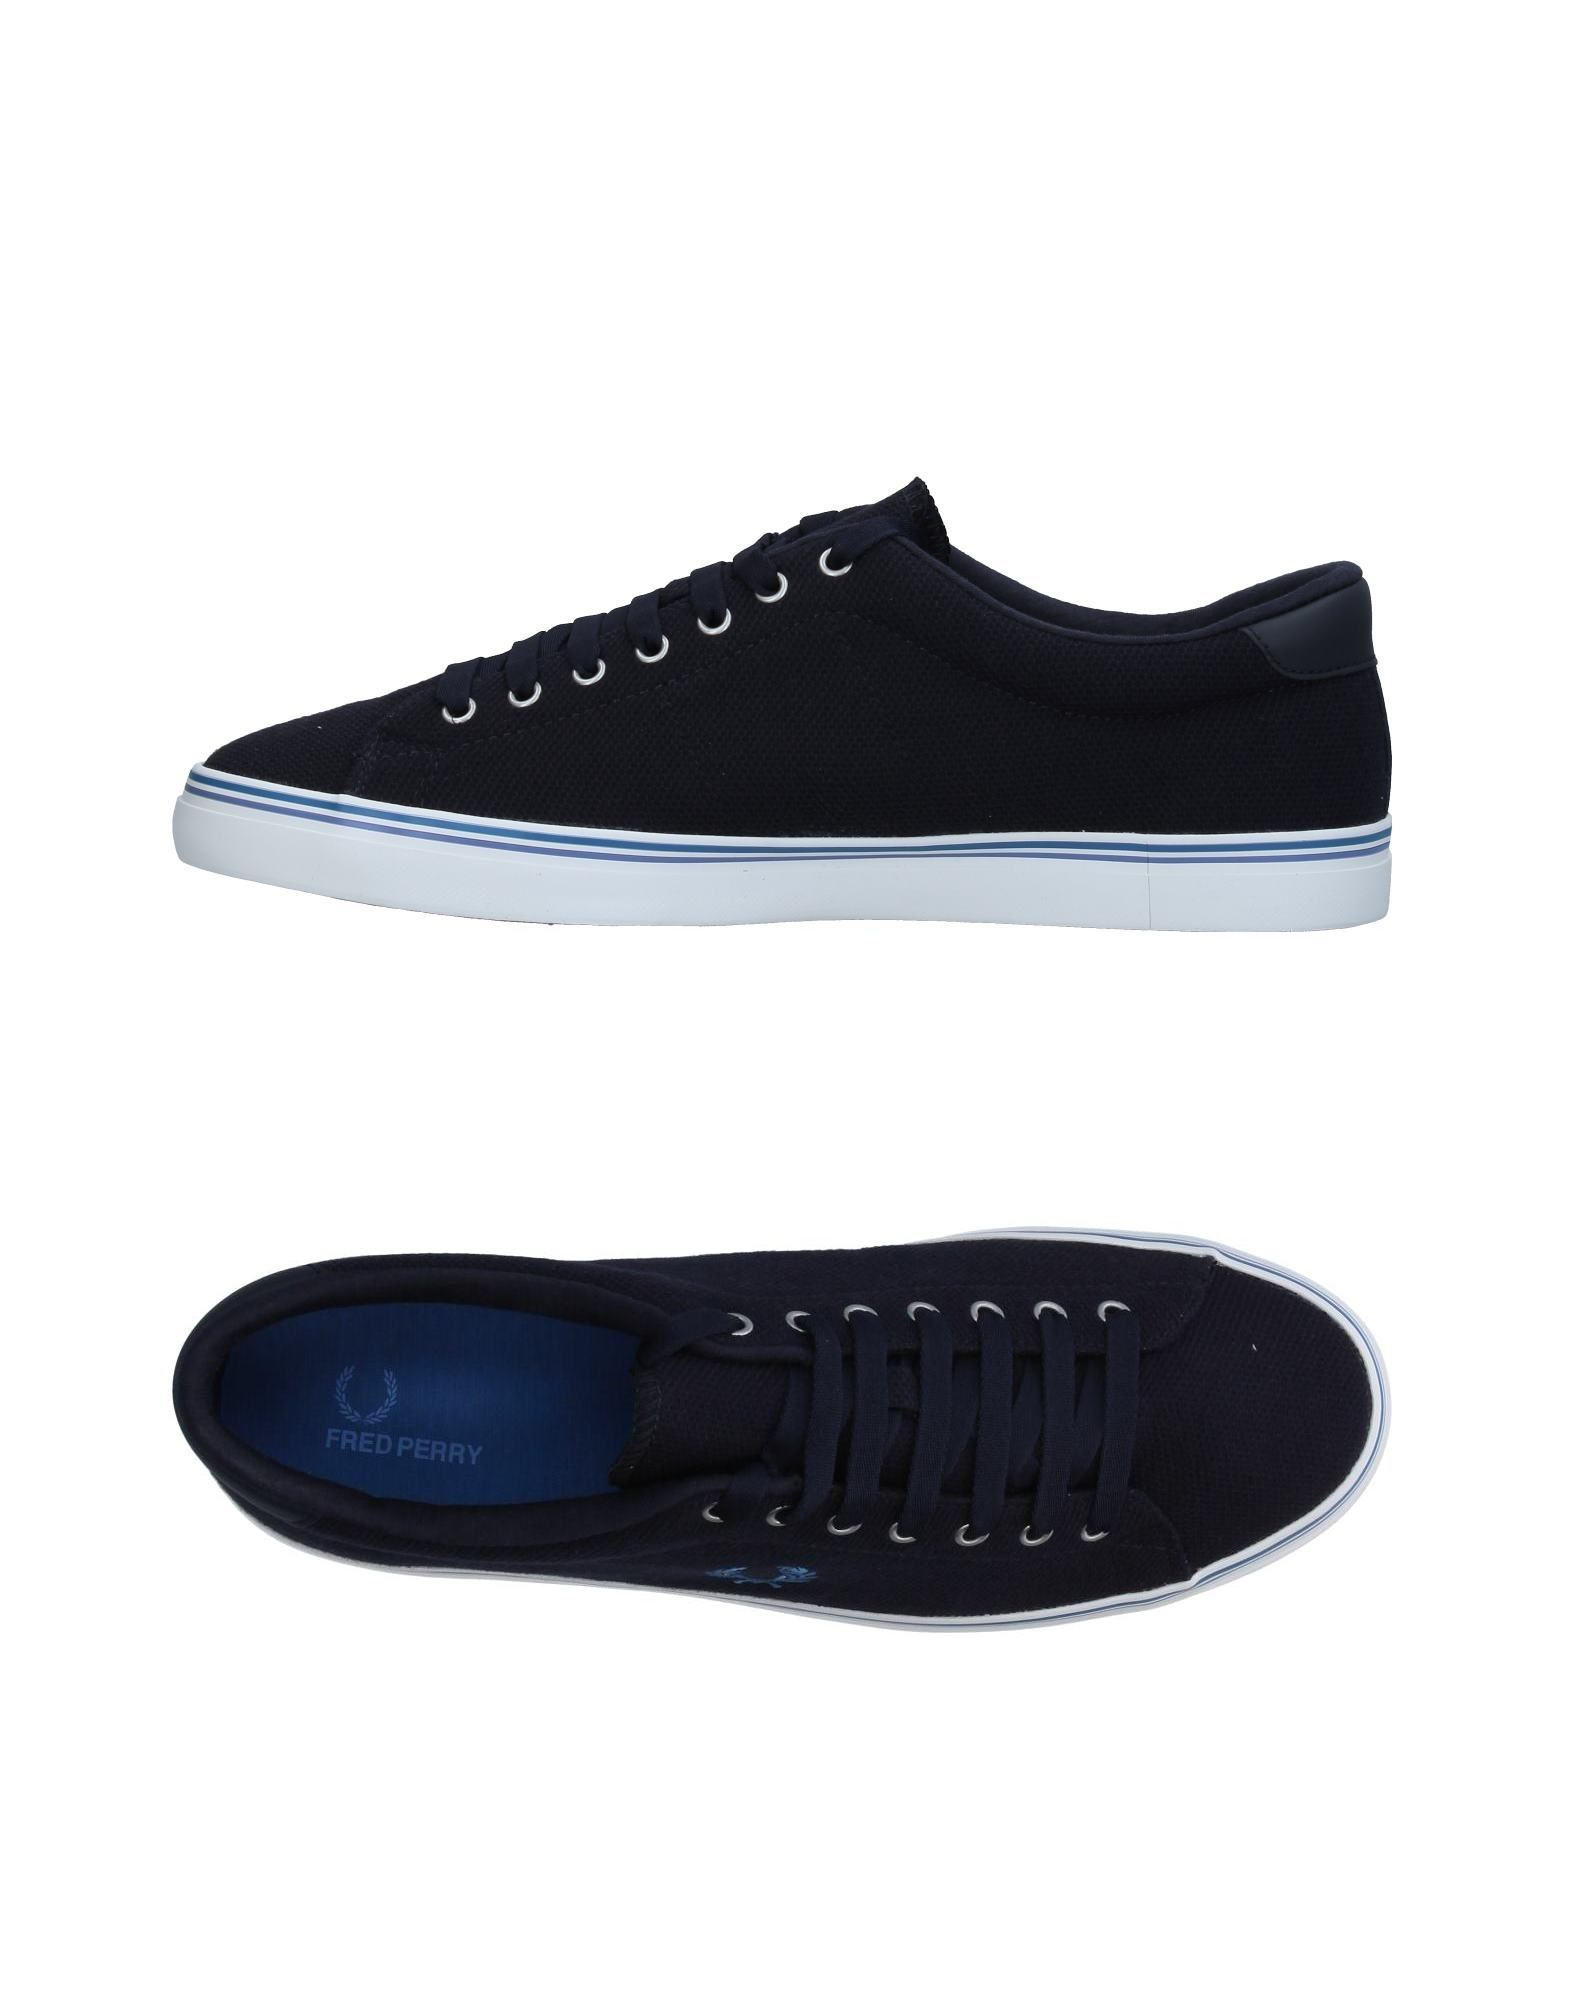 Sneakers Fred Perry Uomo - 11357715WG